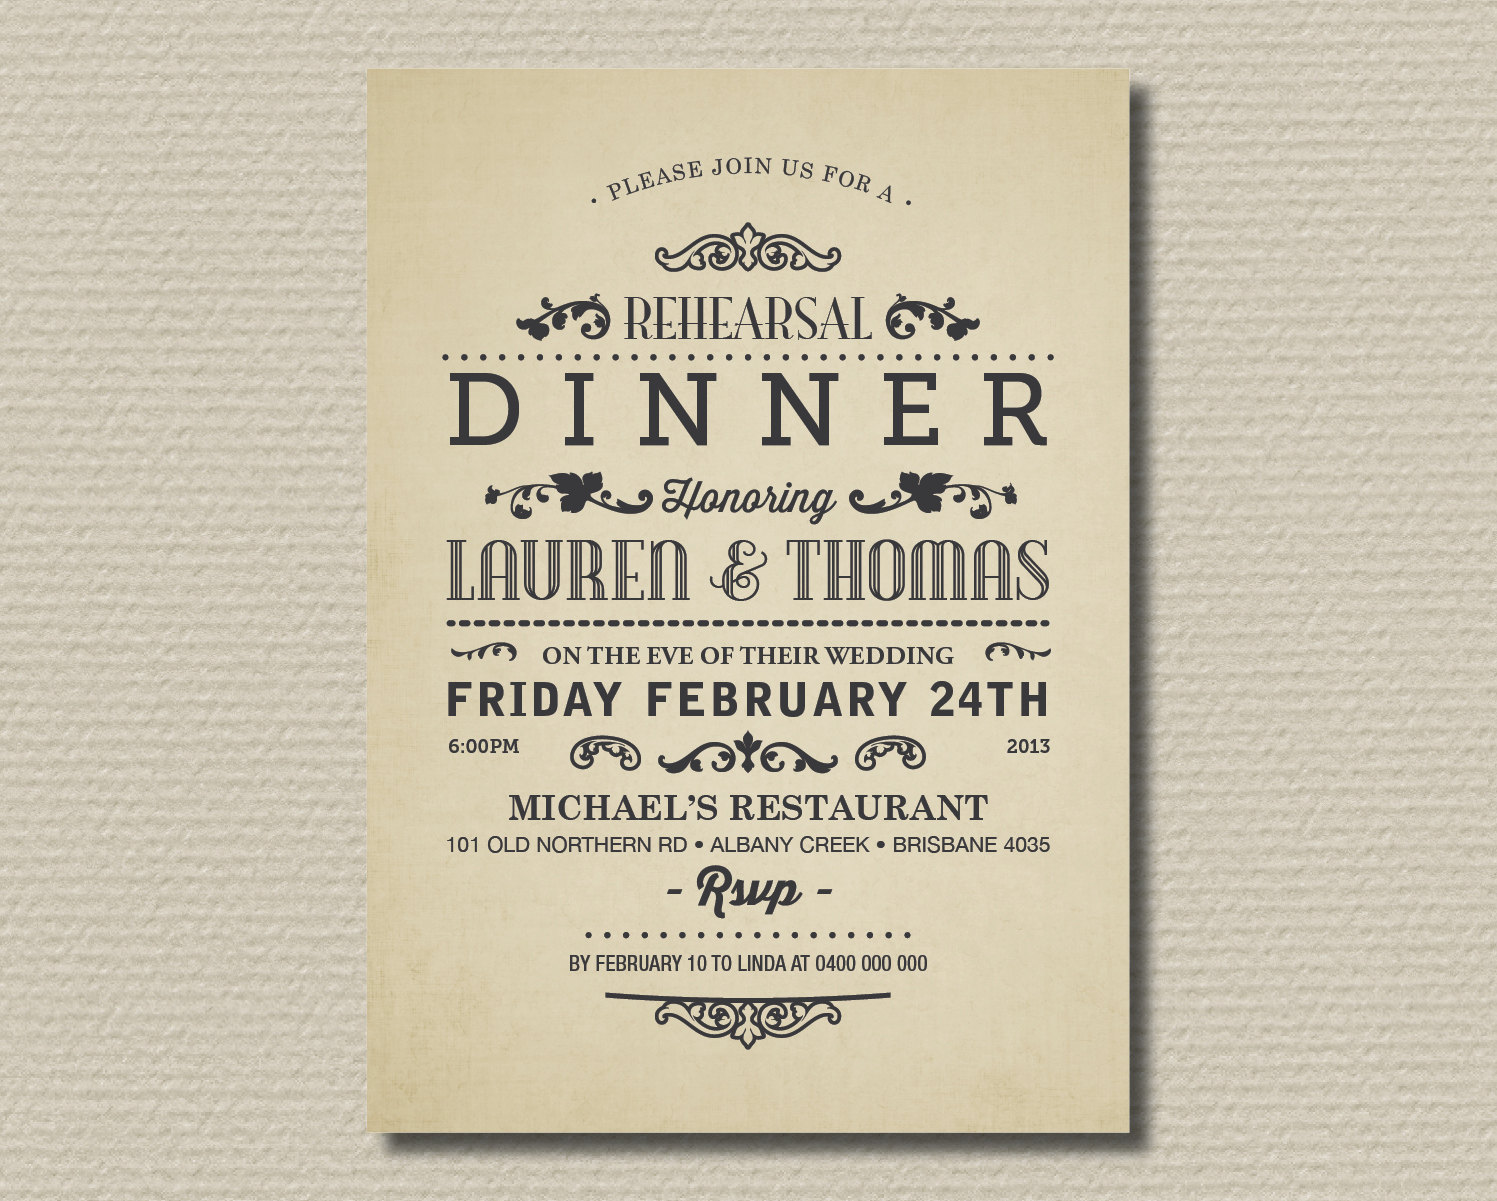 birthday dinner invite message ; dinner-party-invitation-wording-template-dinner-party-invitation-etiquette